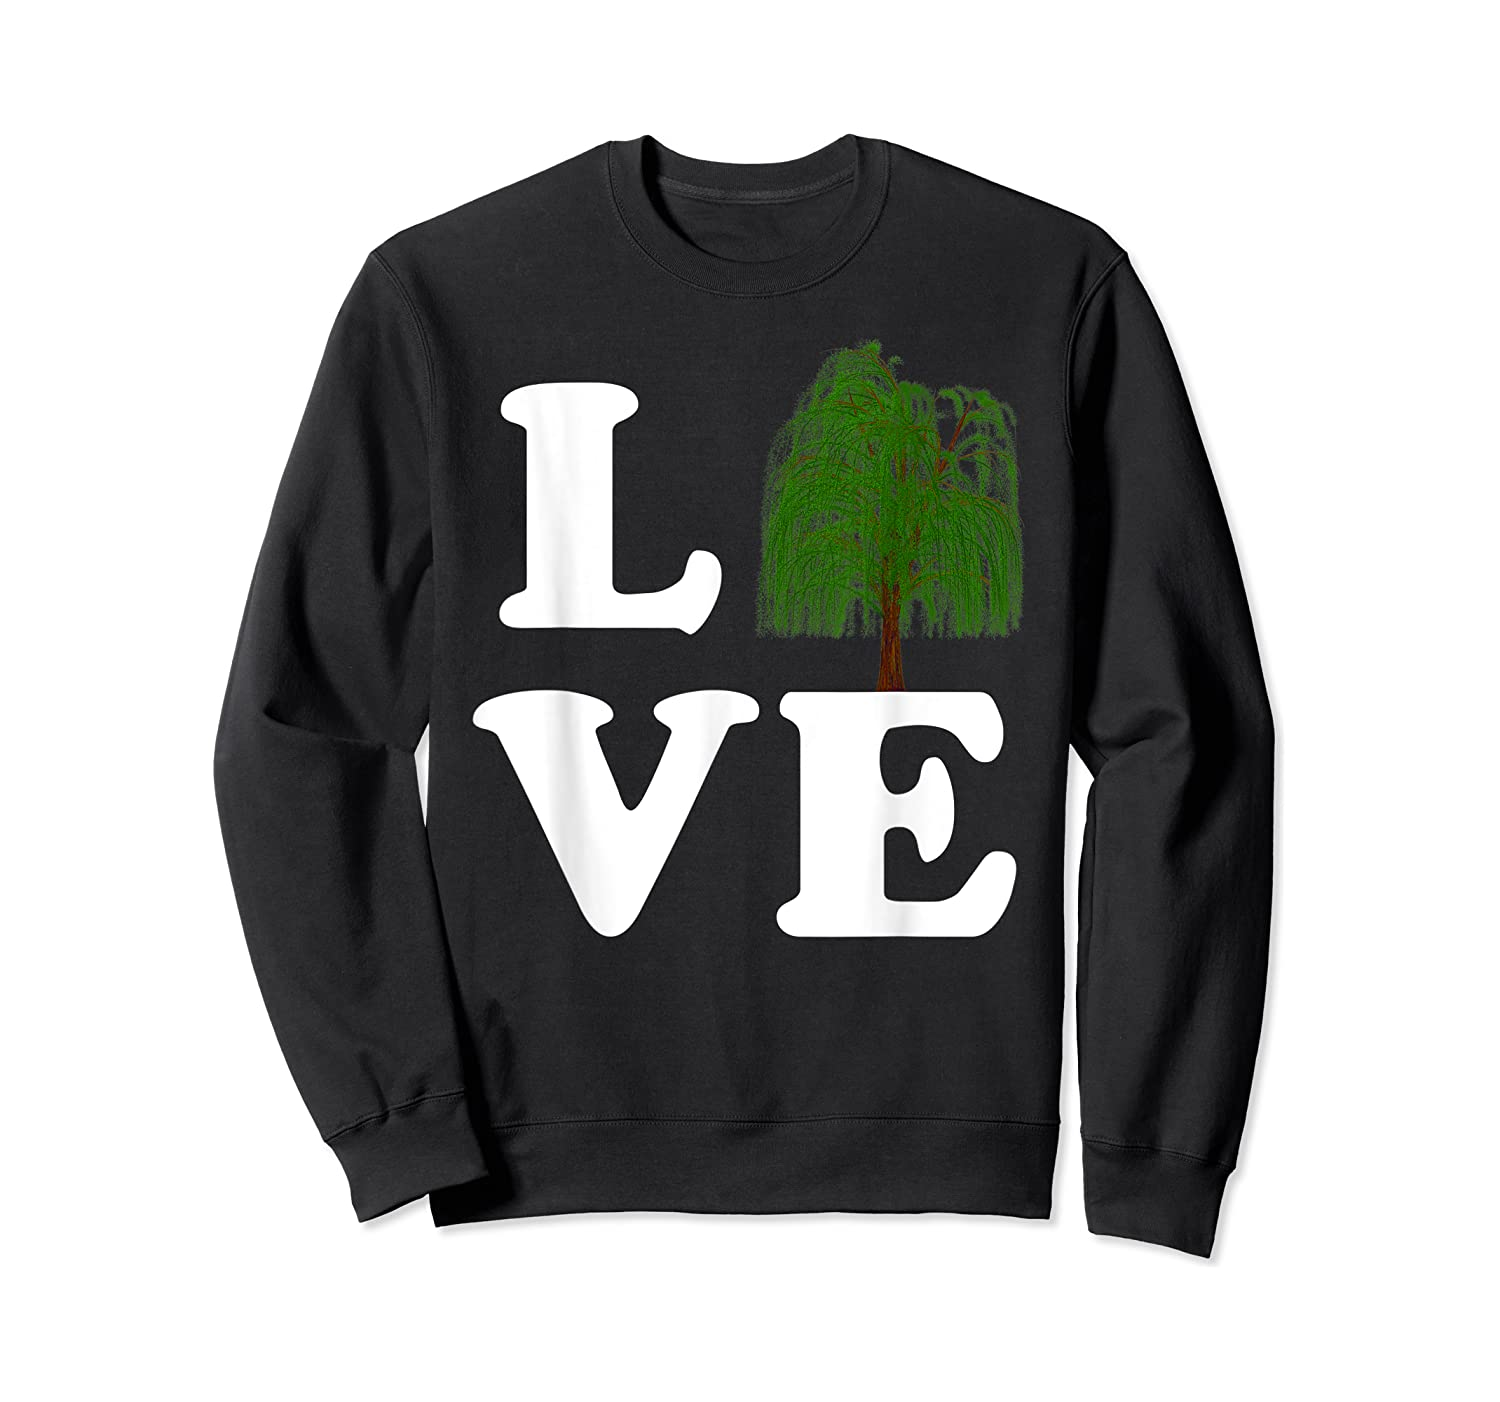 Love Trees Shirt Earth Day Weeping Willow Tee T-shirt Crewneck Sweater